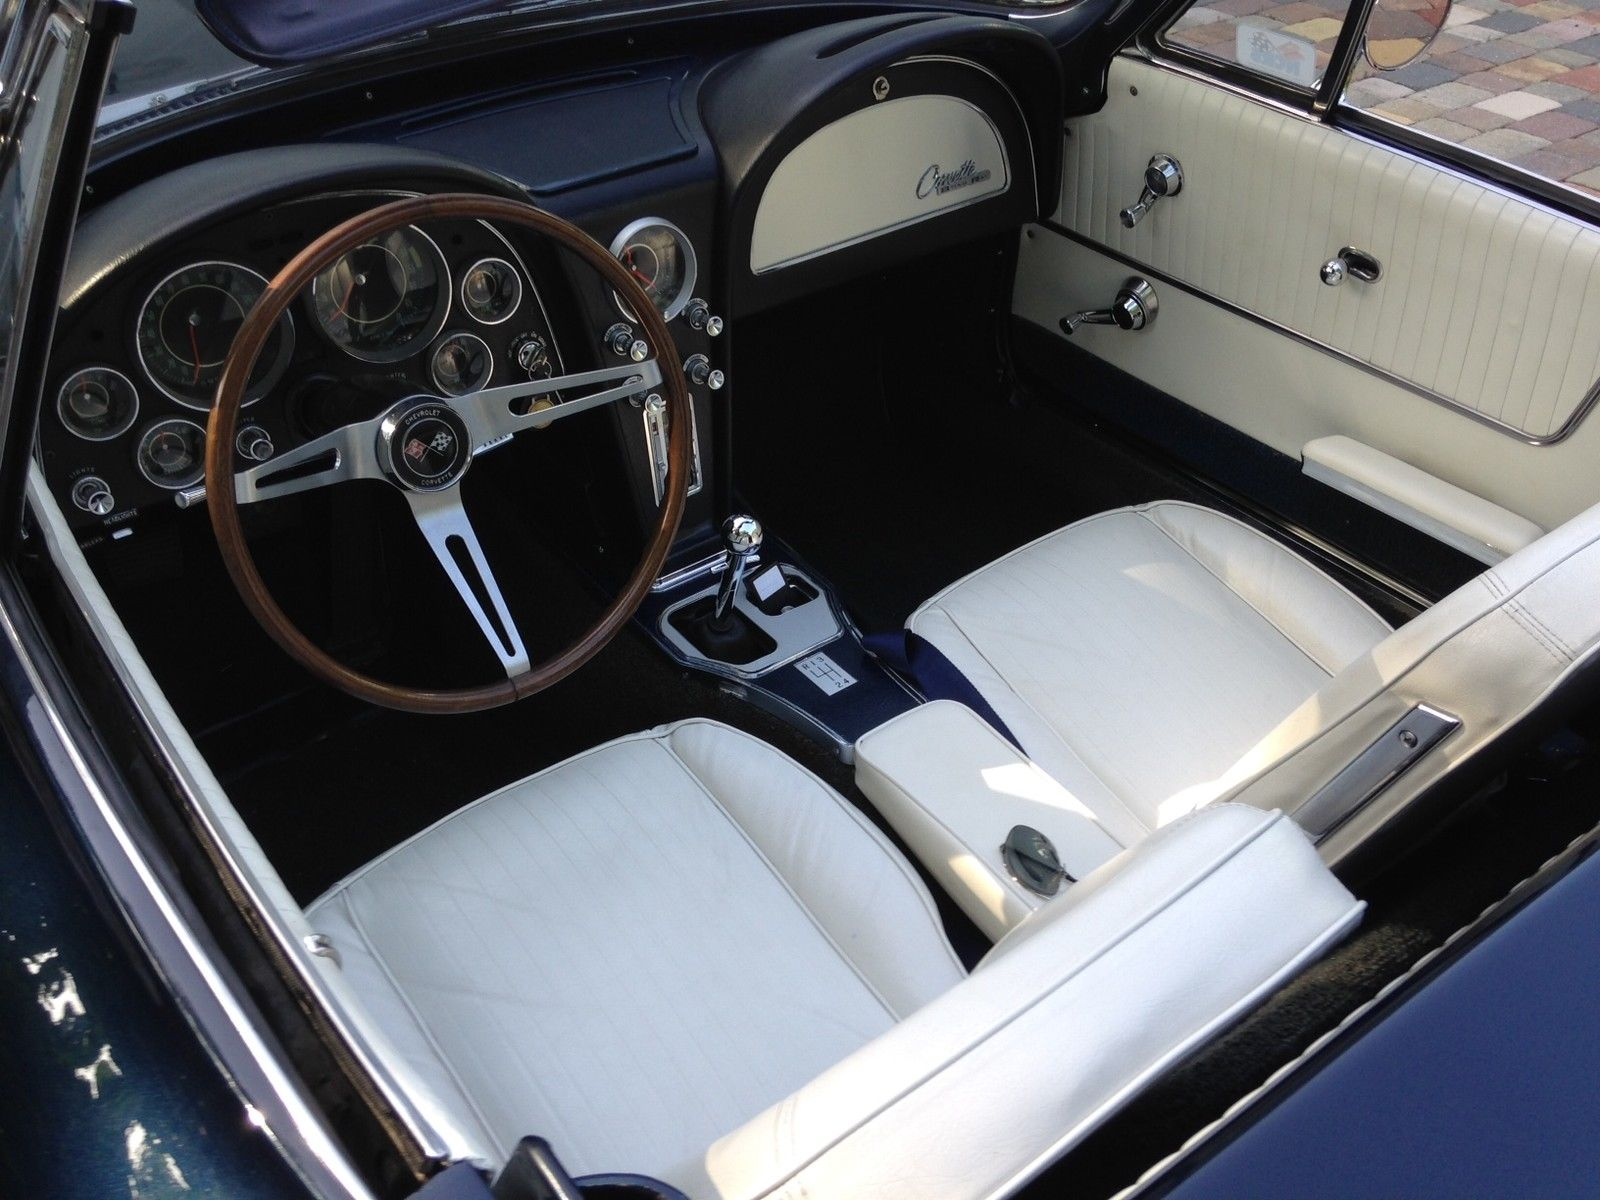 daytona blue 2 top conv with rare white blue interior ncrs tf very nice classic. Black Bedroom Furniture Sets. Home Design Ideas